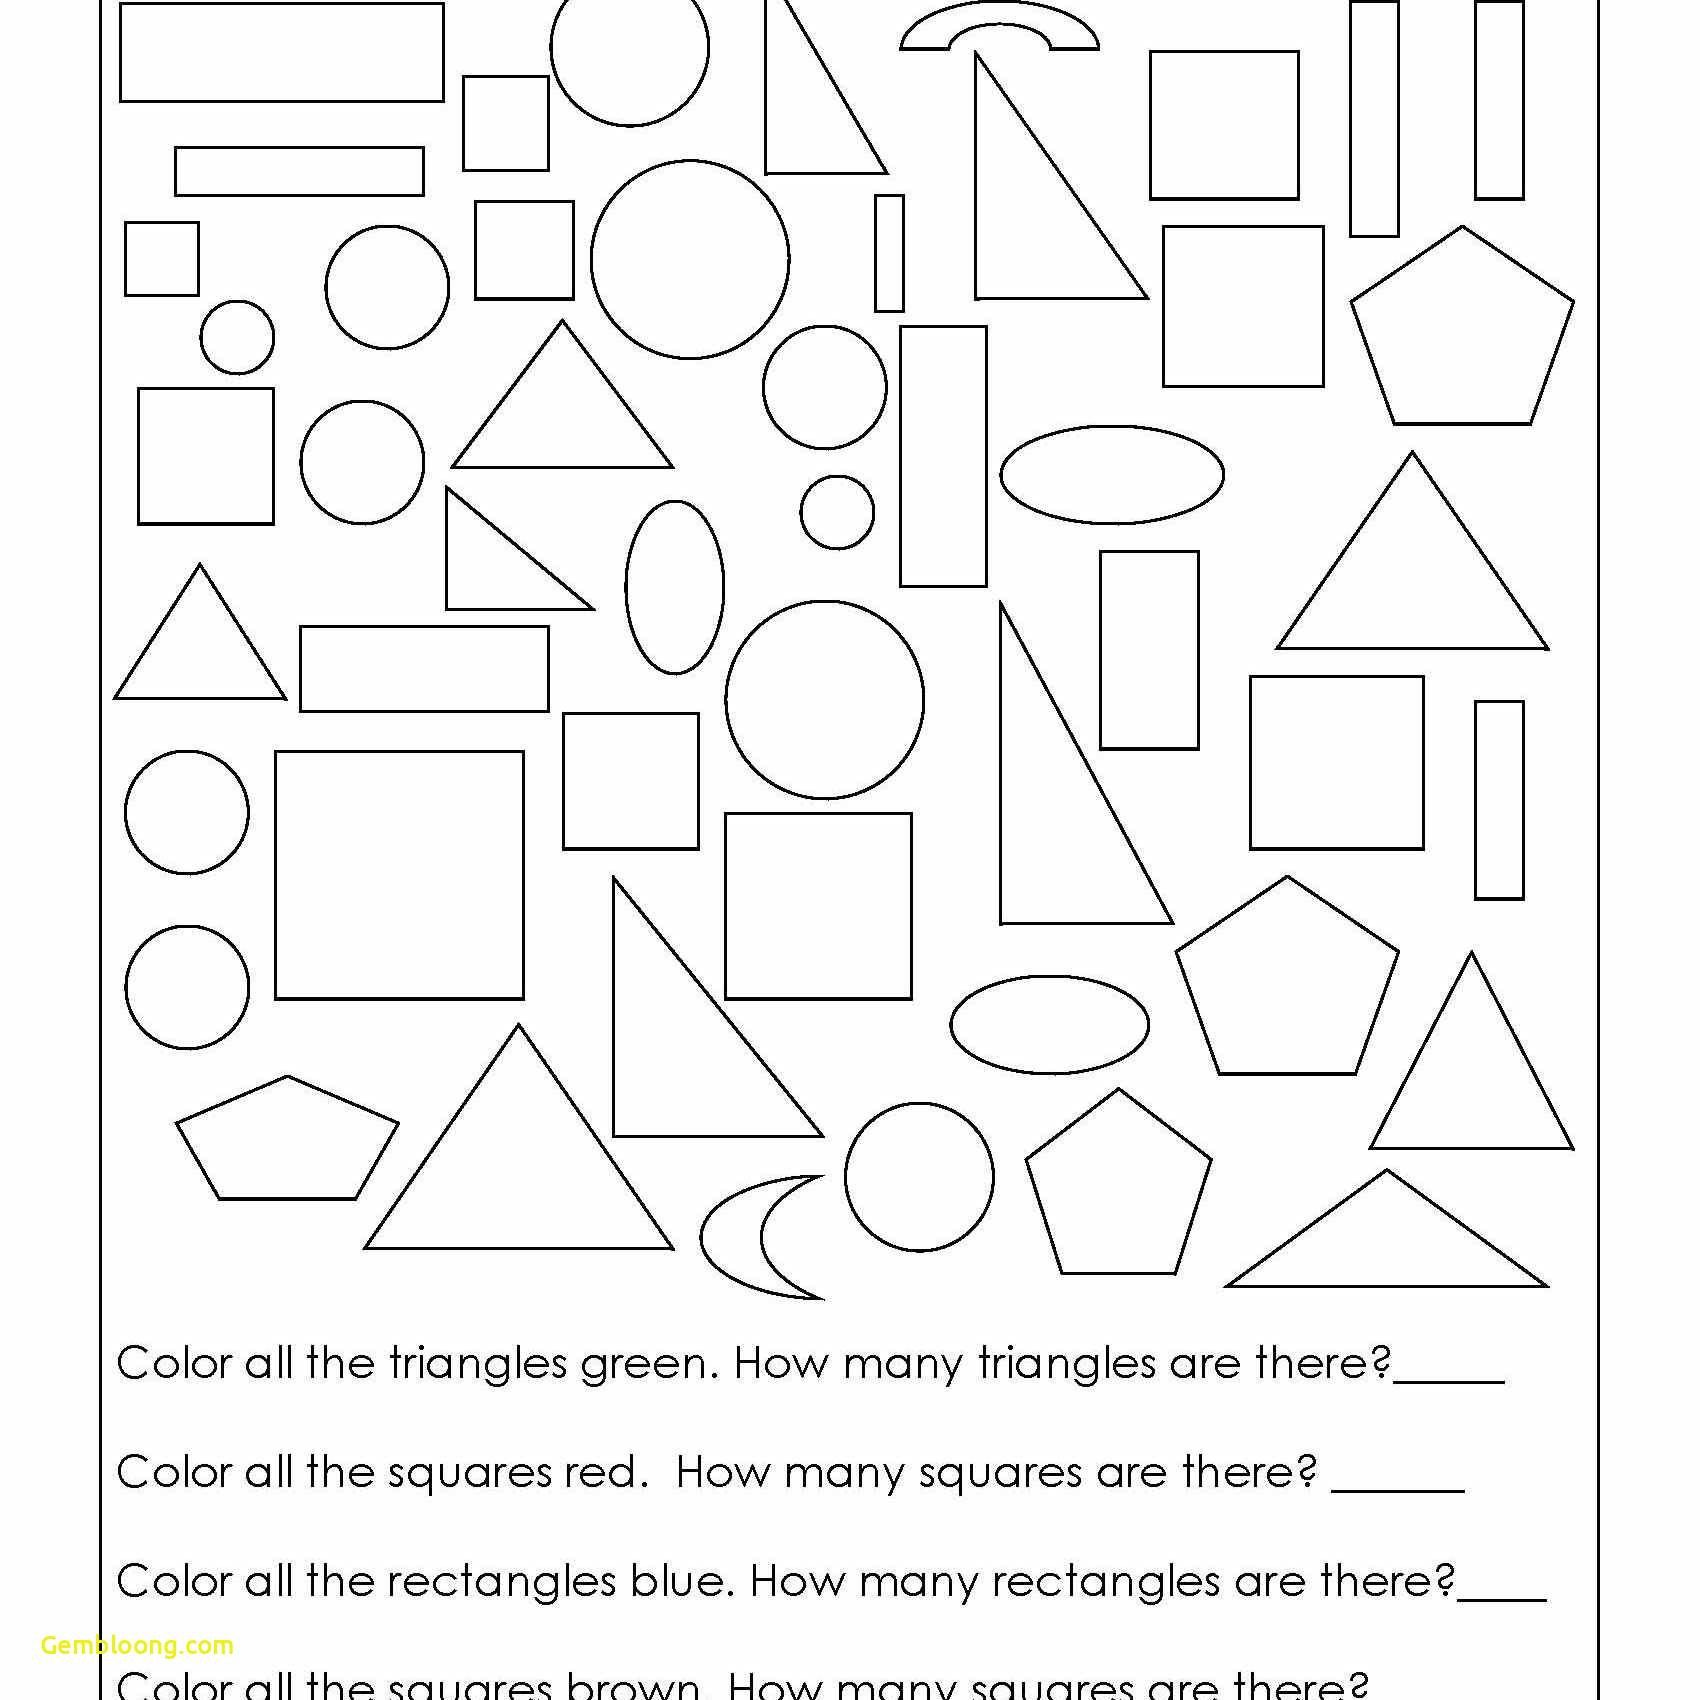 Finding Area And Perimeter Worksheets Geometry Worksheets